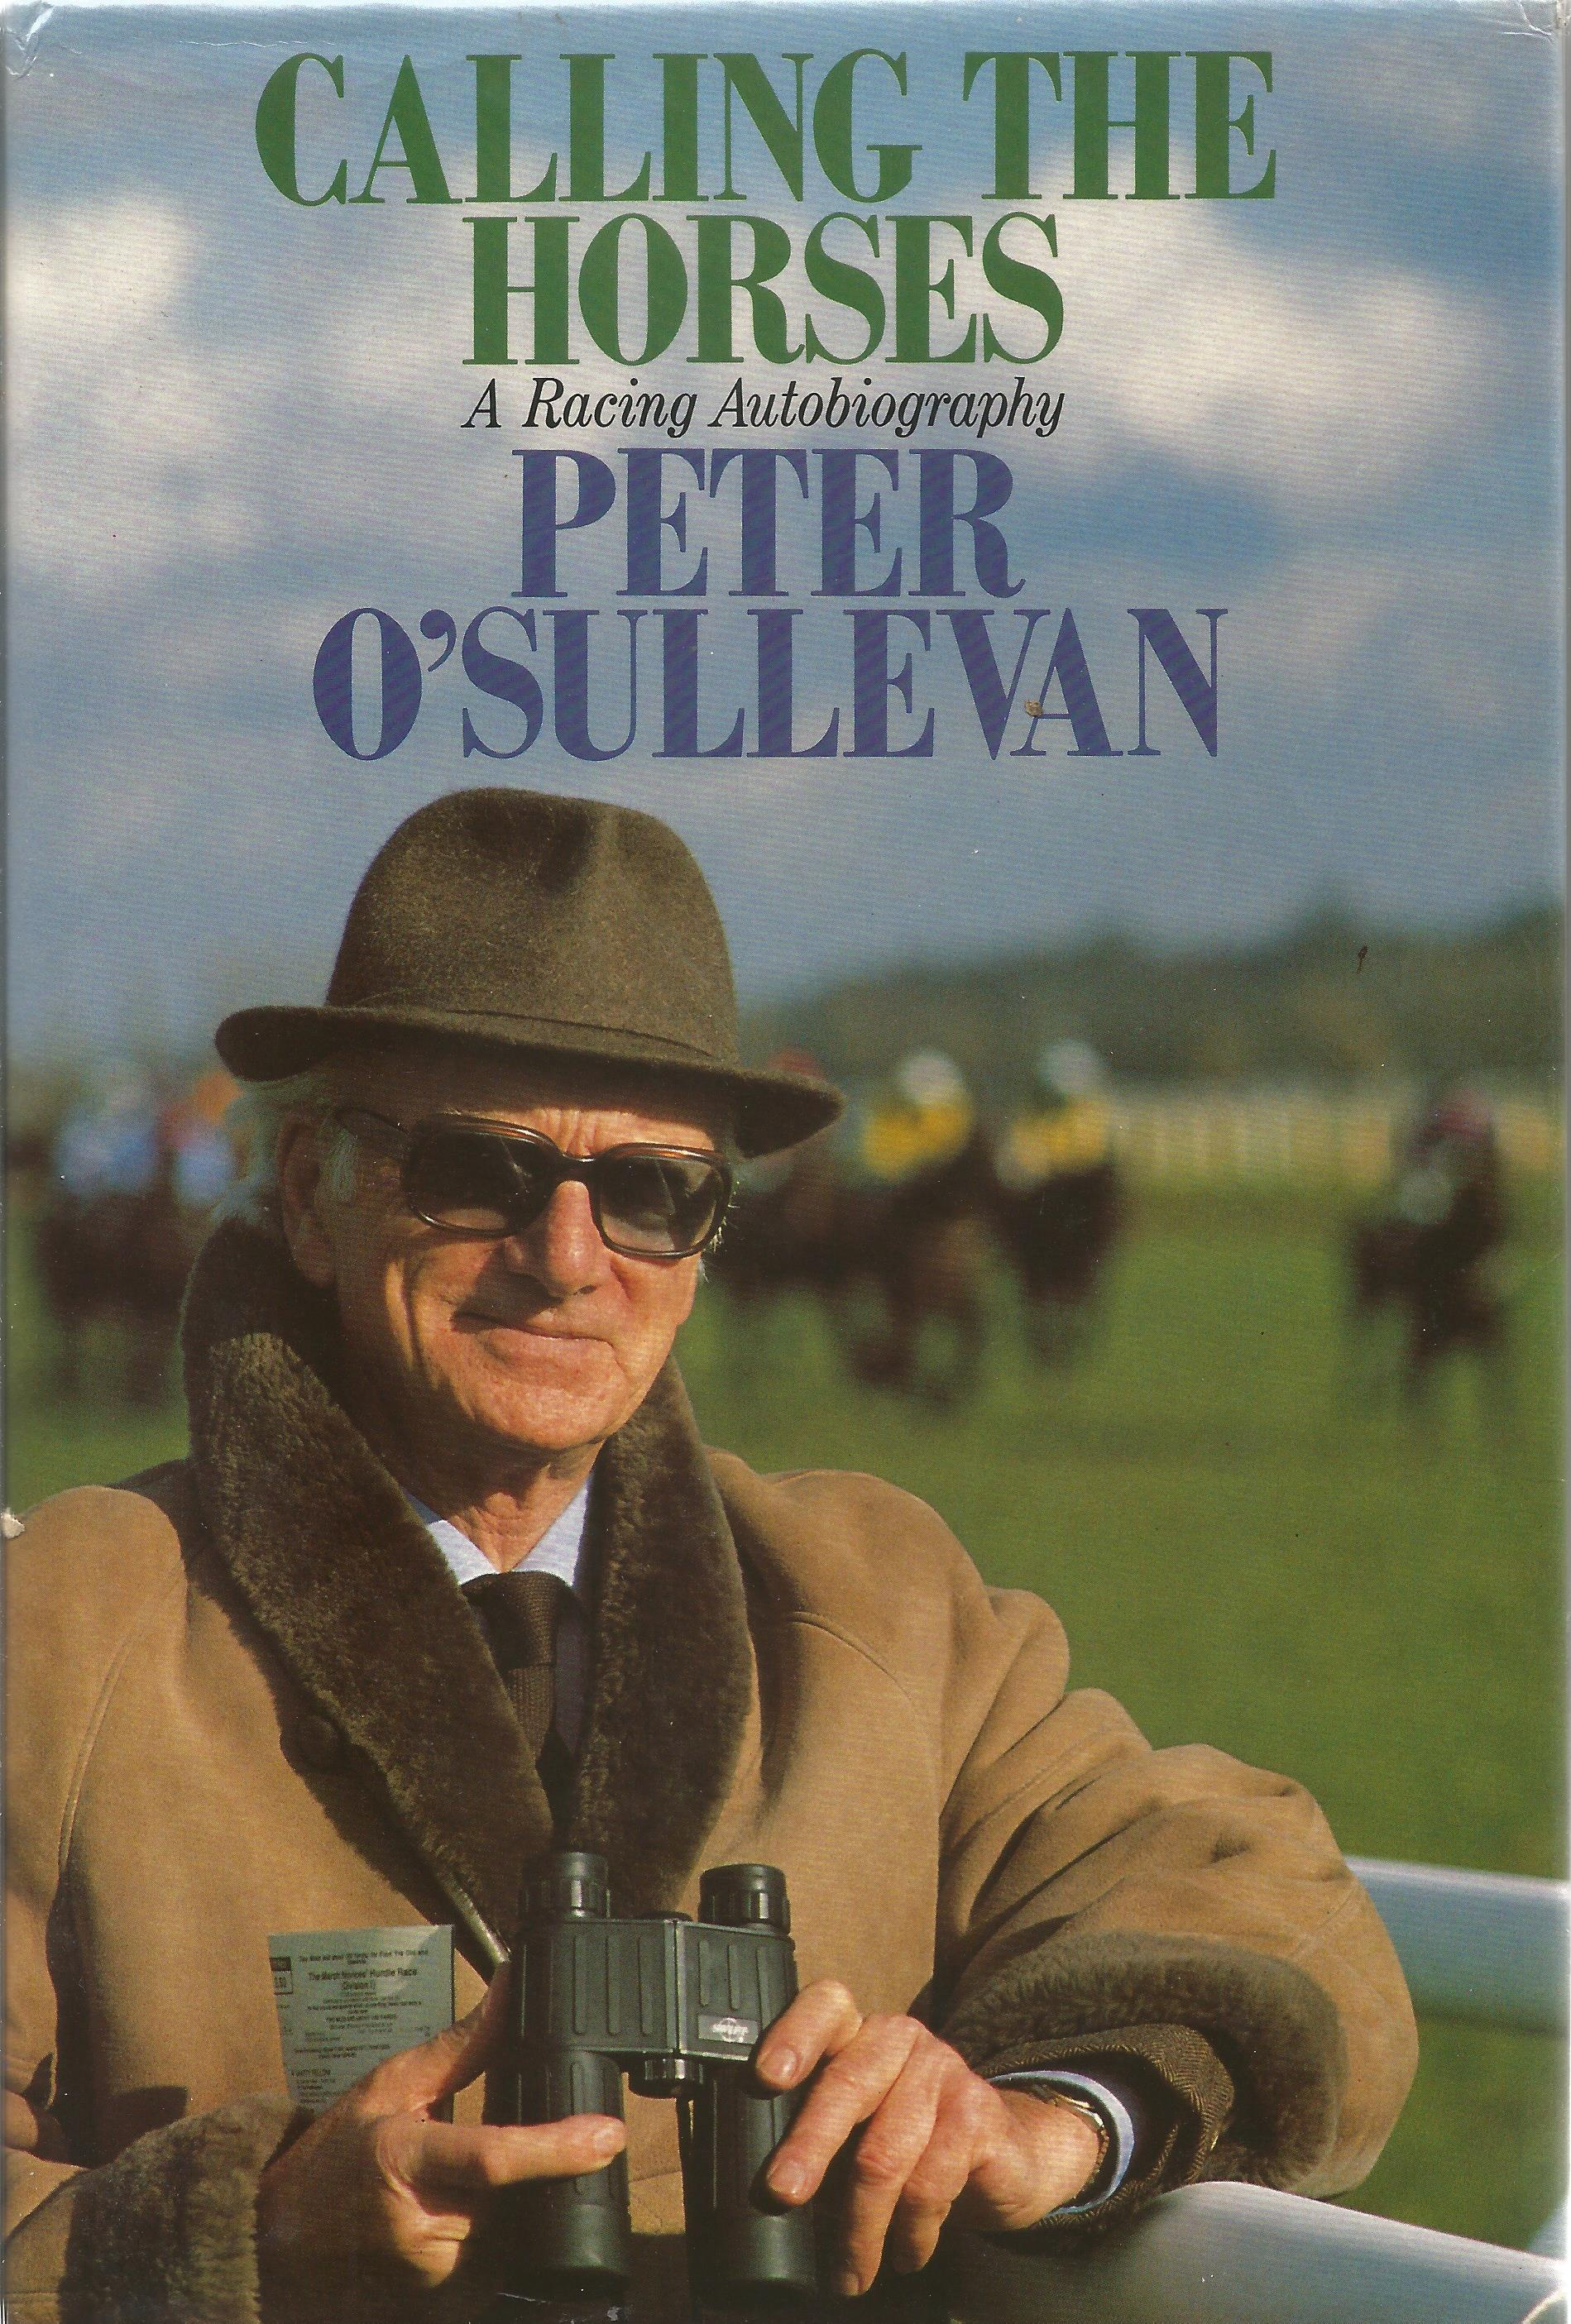 Peter O'Sulivan Hardback Book Calling the Horses A Racing Autobiography signed by the Author on